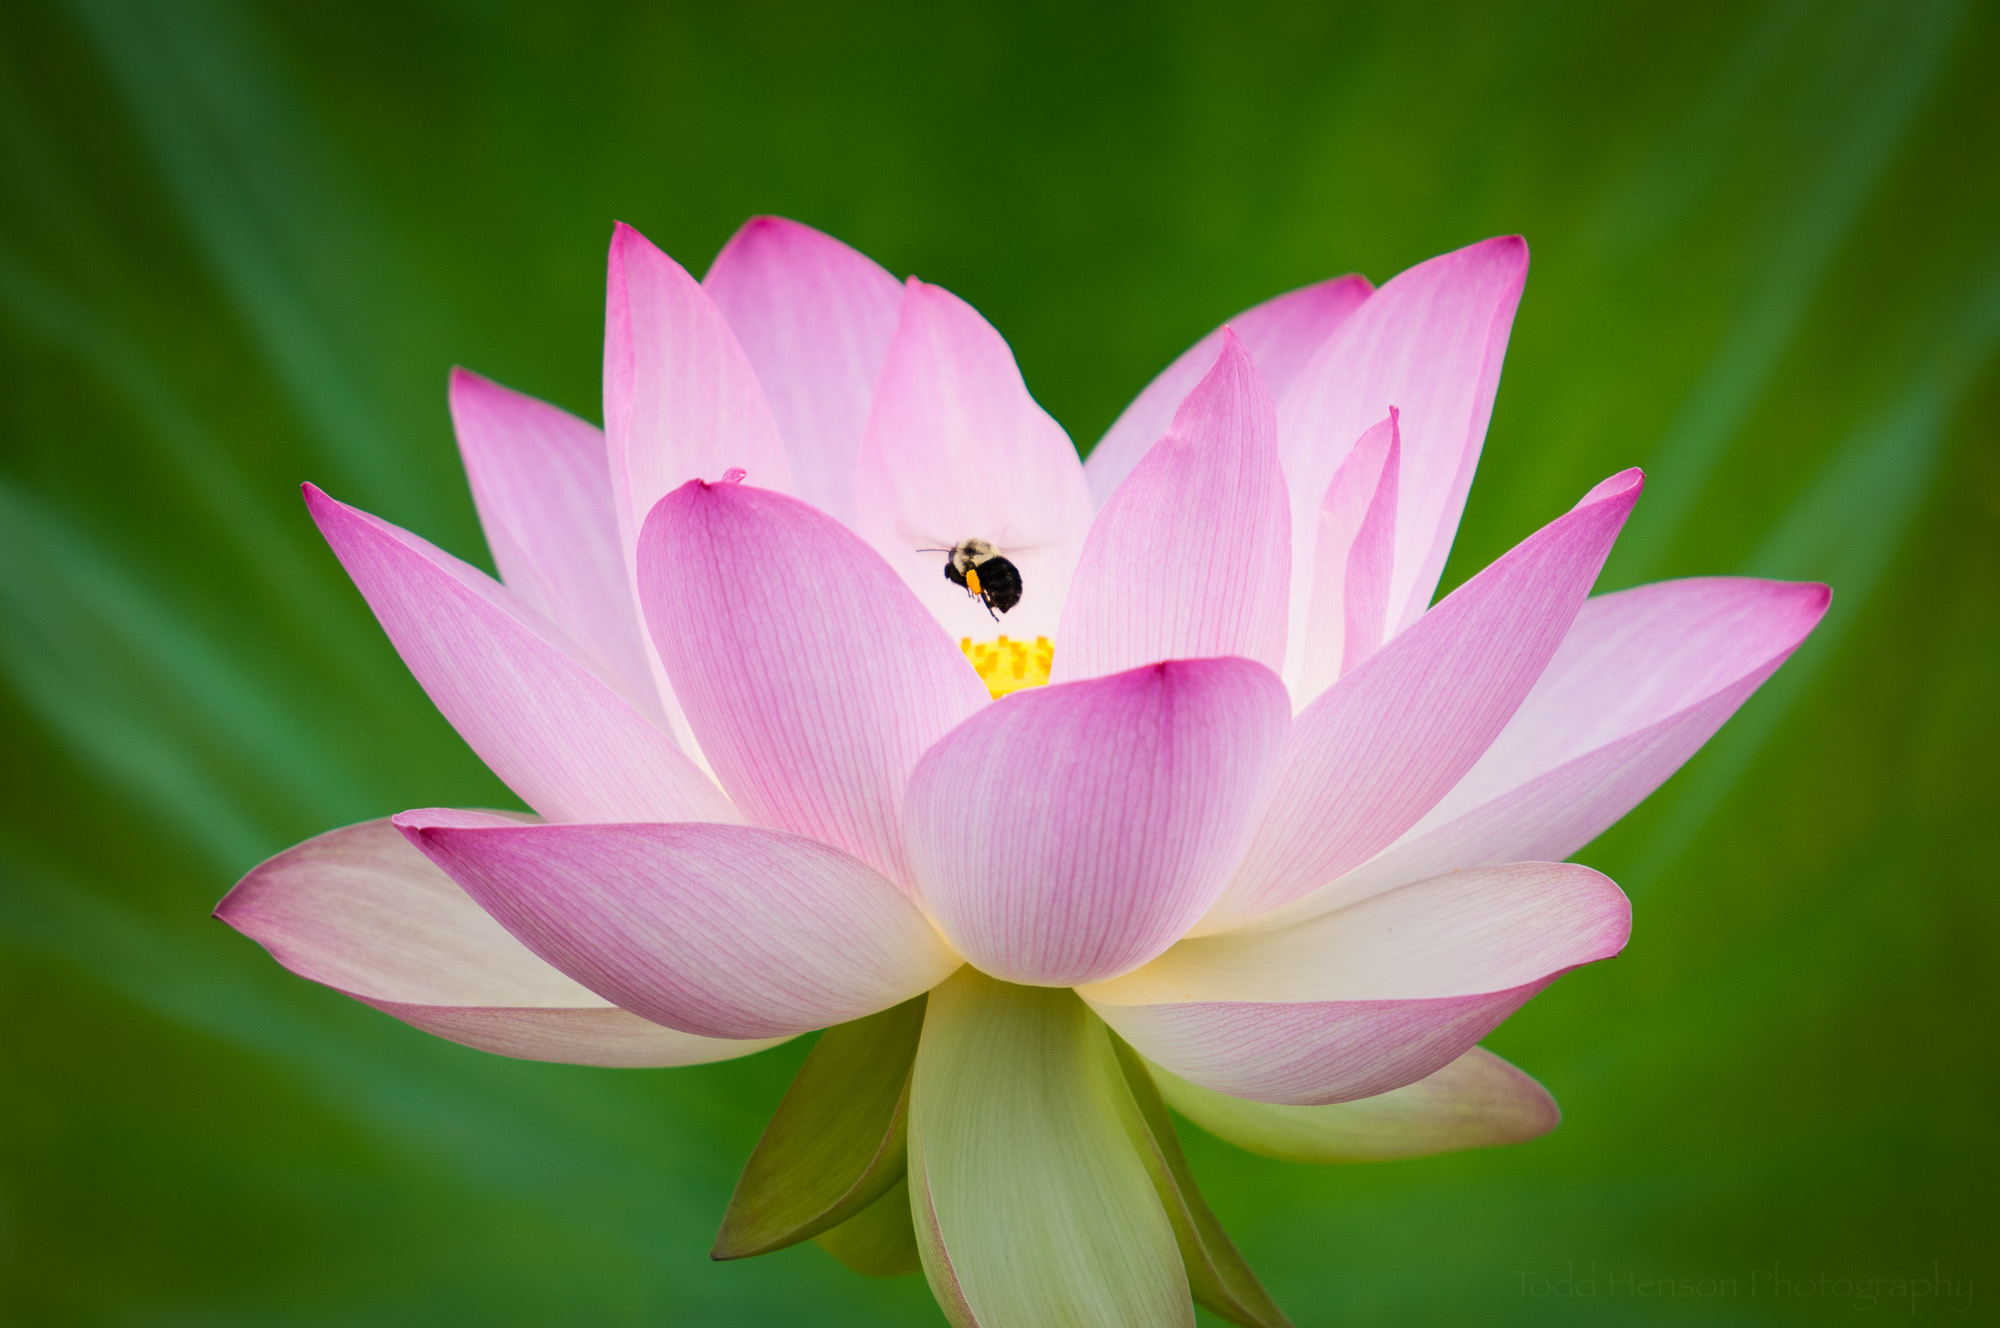 Image of Lotus Flower with Bumble Bee against green background